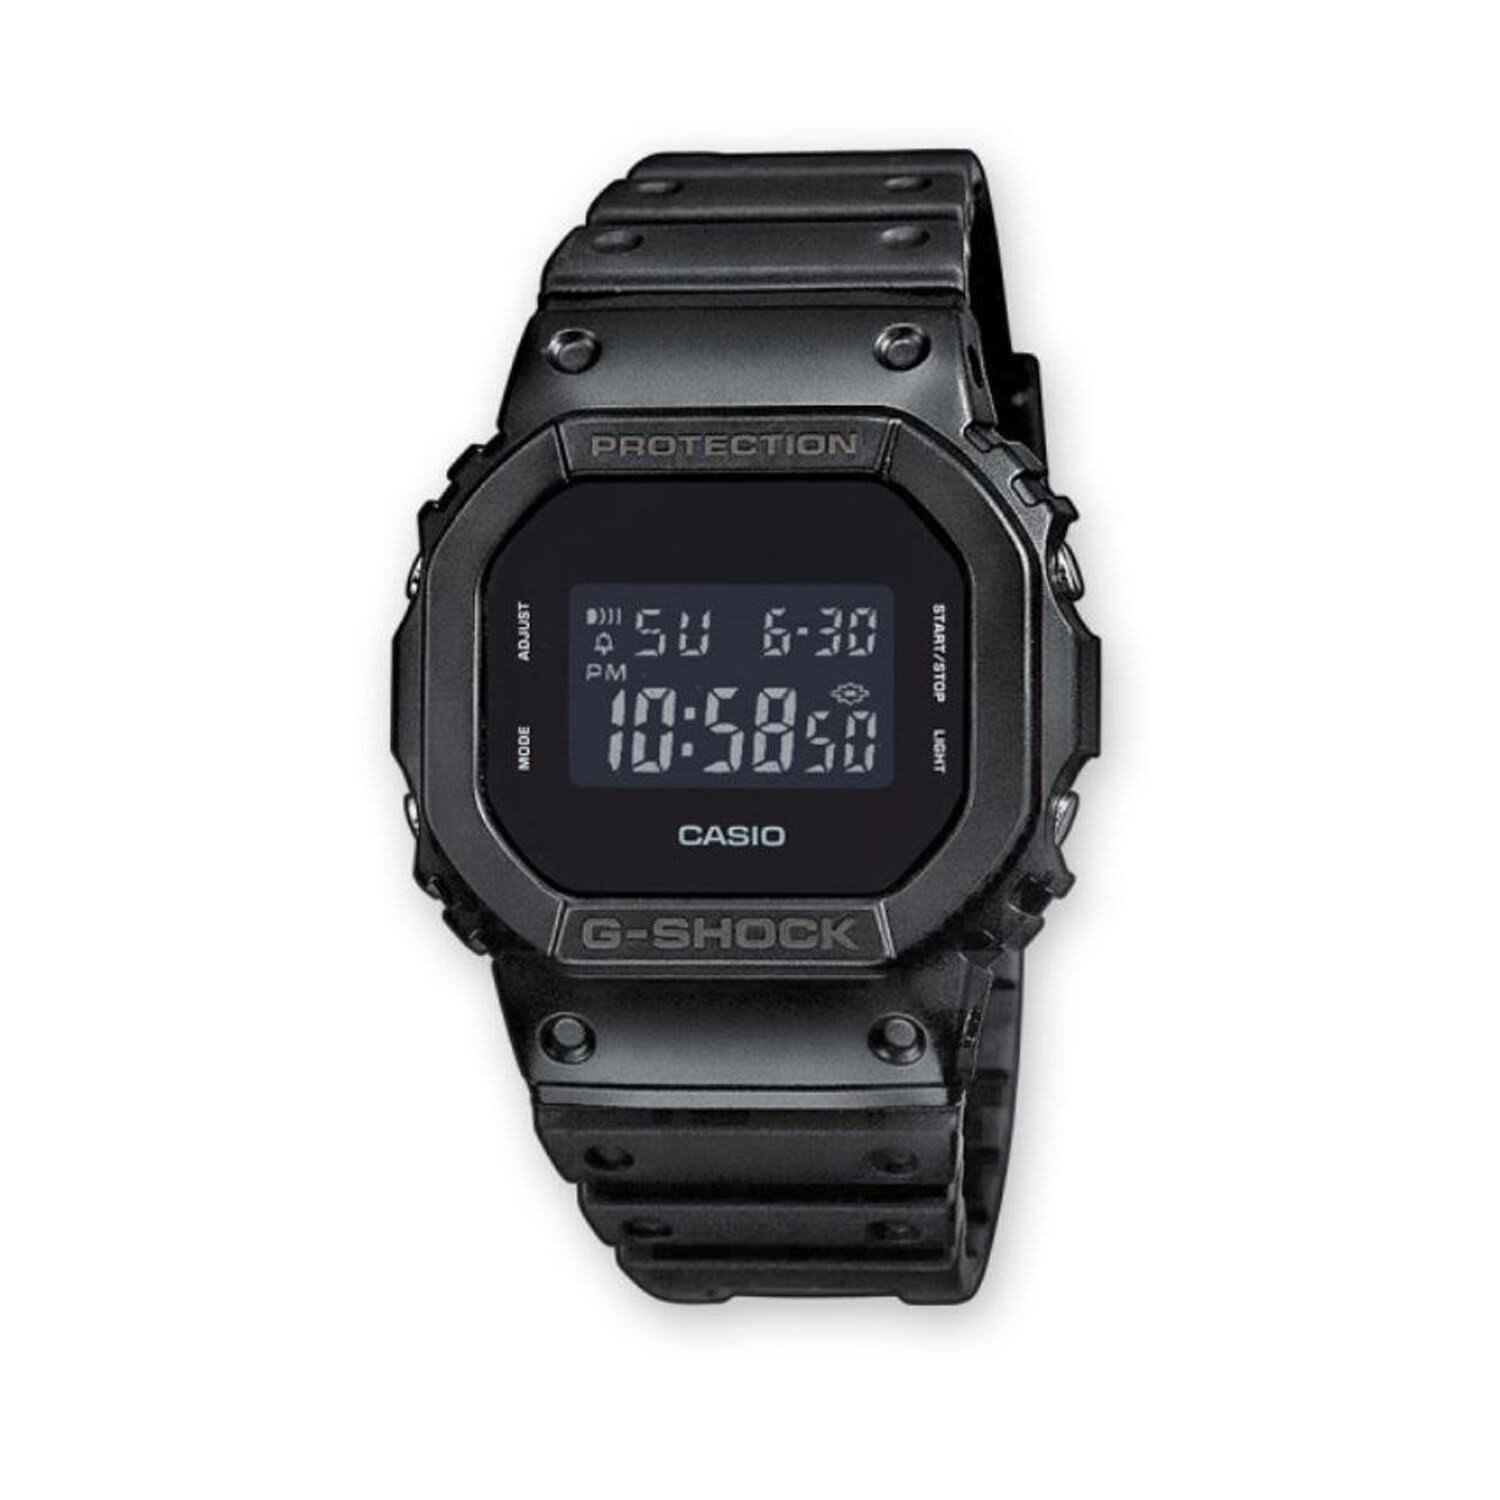 Casio G-Shock Watch DW-5600BB-1DR